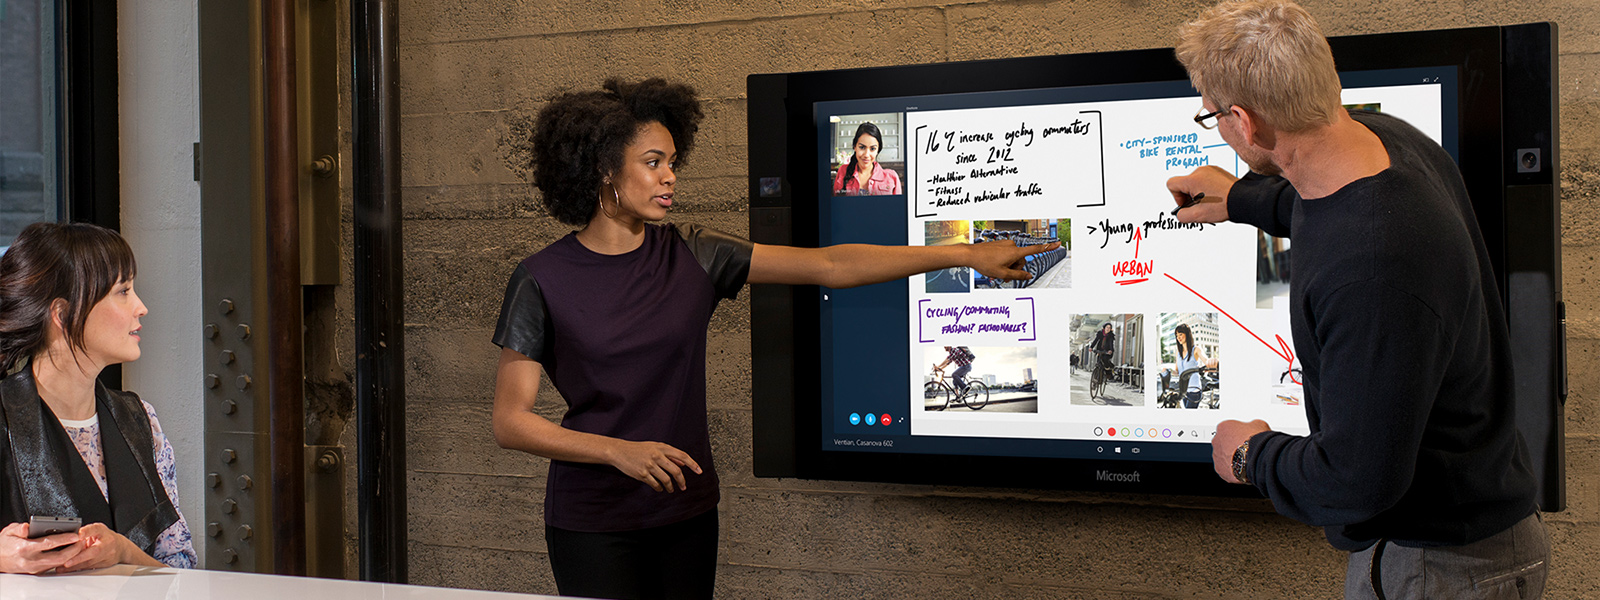 Woman and man use touchscreen on Surface Hub in conference room.